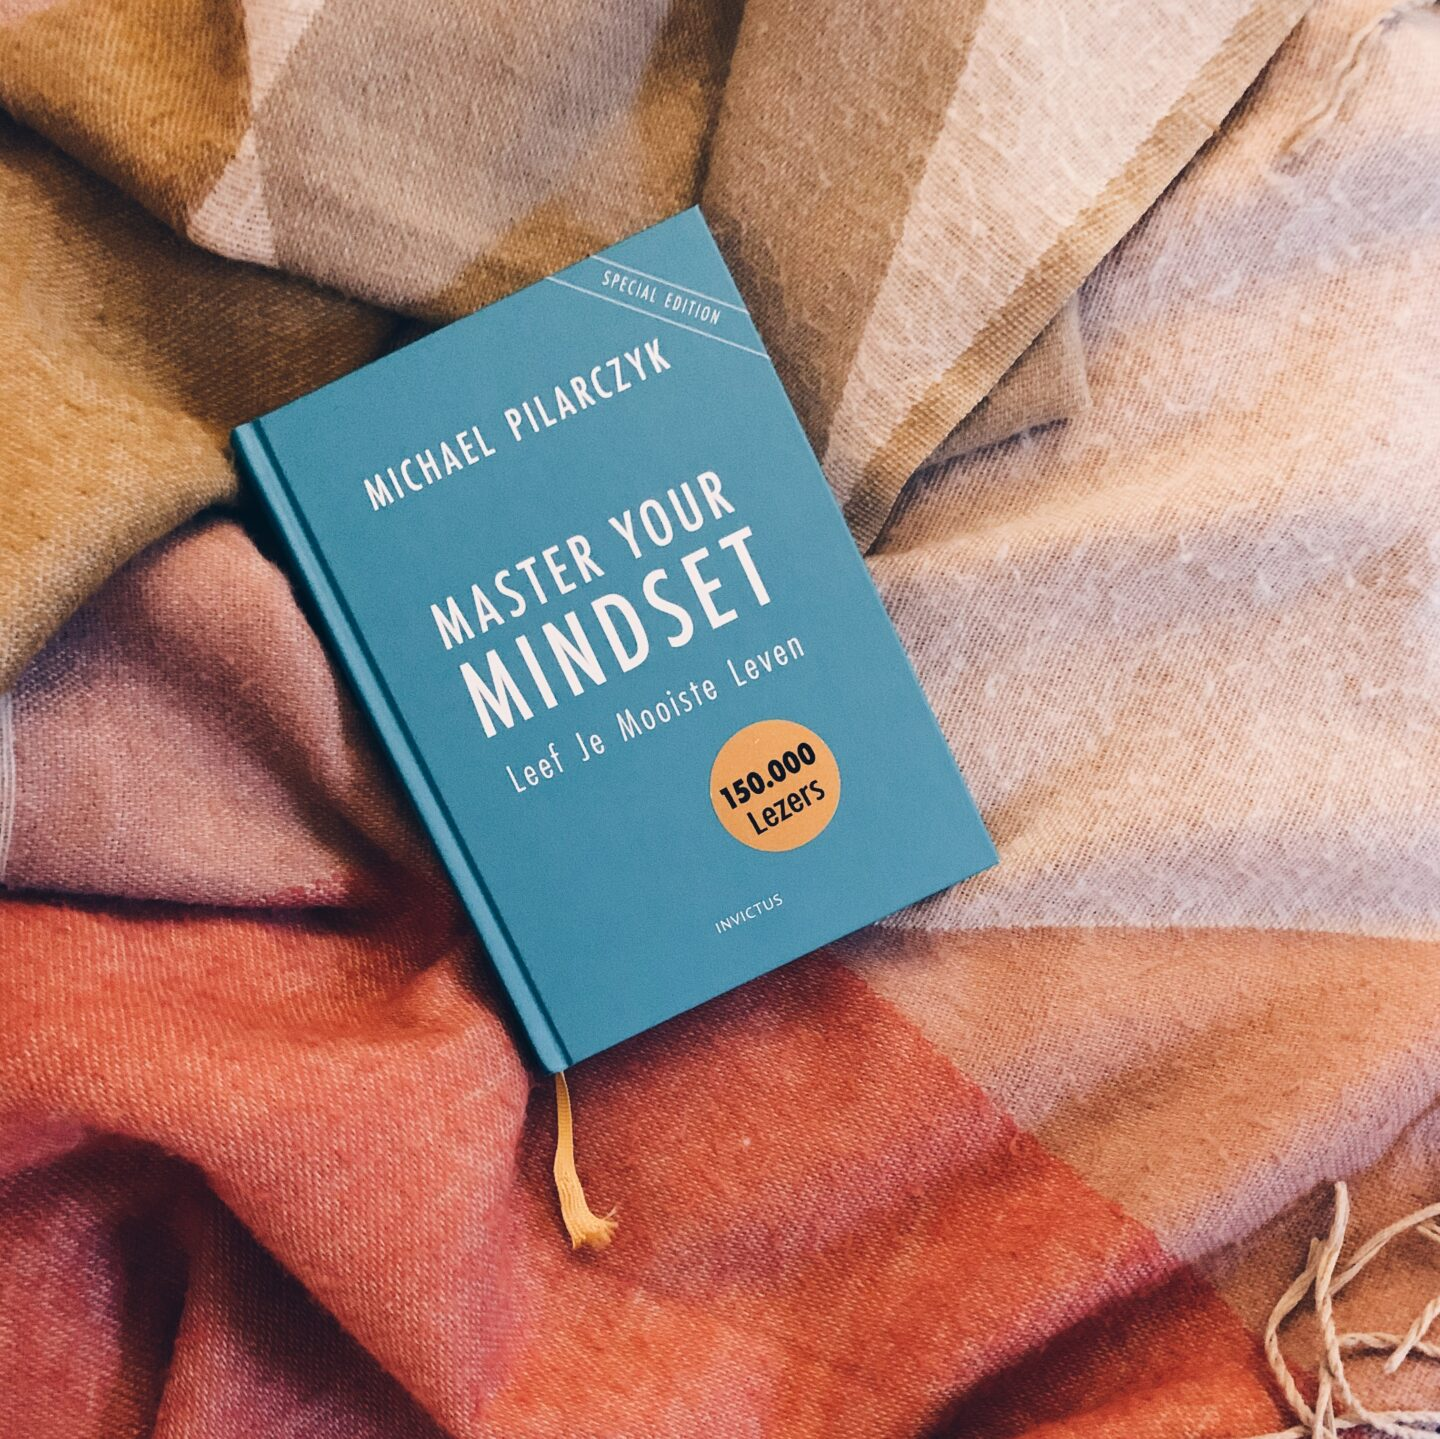 Review: Master your mindset geschreven door Michael Pilarczyk